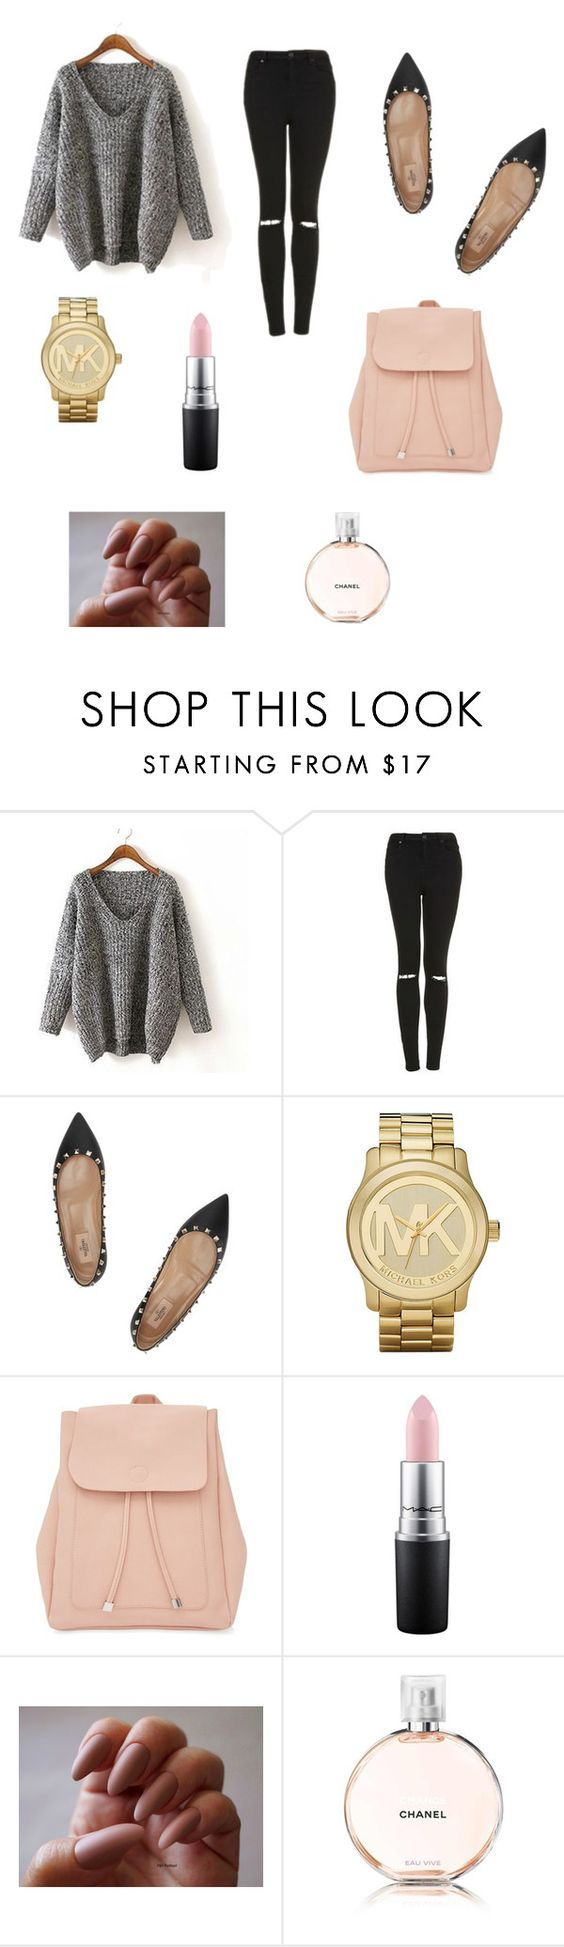 """Untitled #84"" by sadiecoda on Polyvore featuring Topshop, Valentino, Michael Kors, New Look, MAC Cosmetics and Chanel"